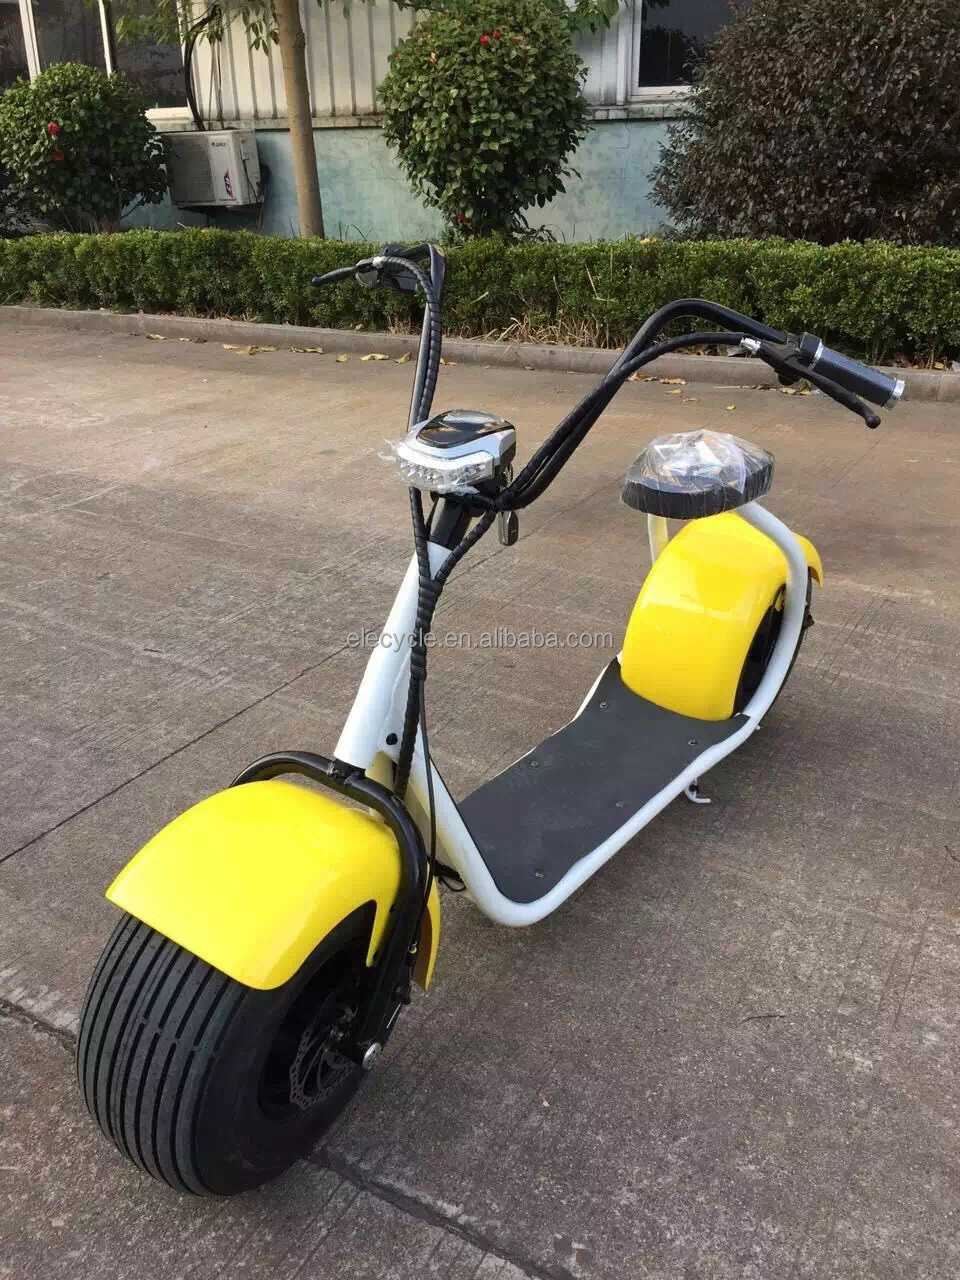 E-Mark approved cheap price electric mini motorcycle for sale